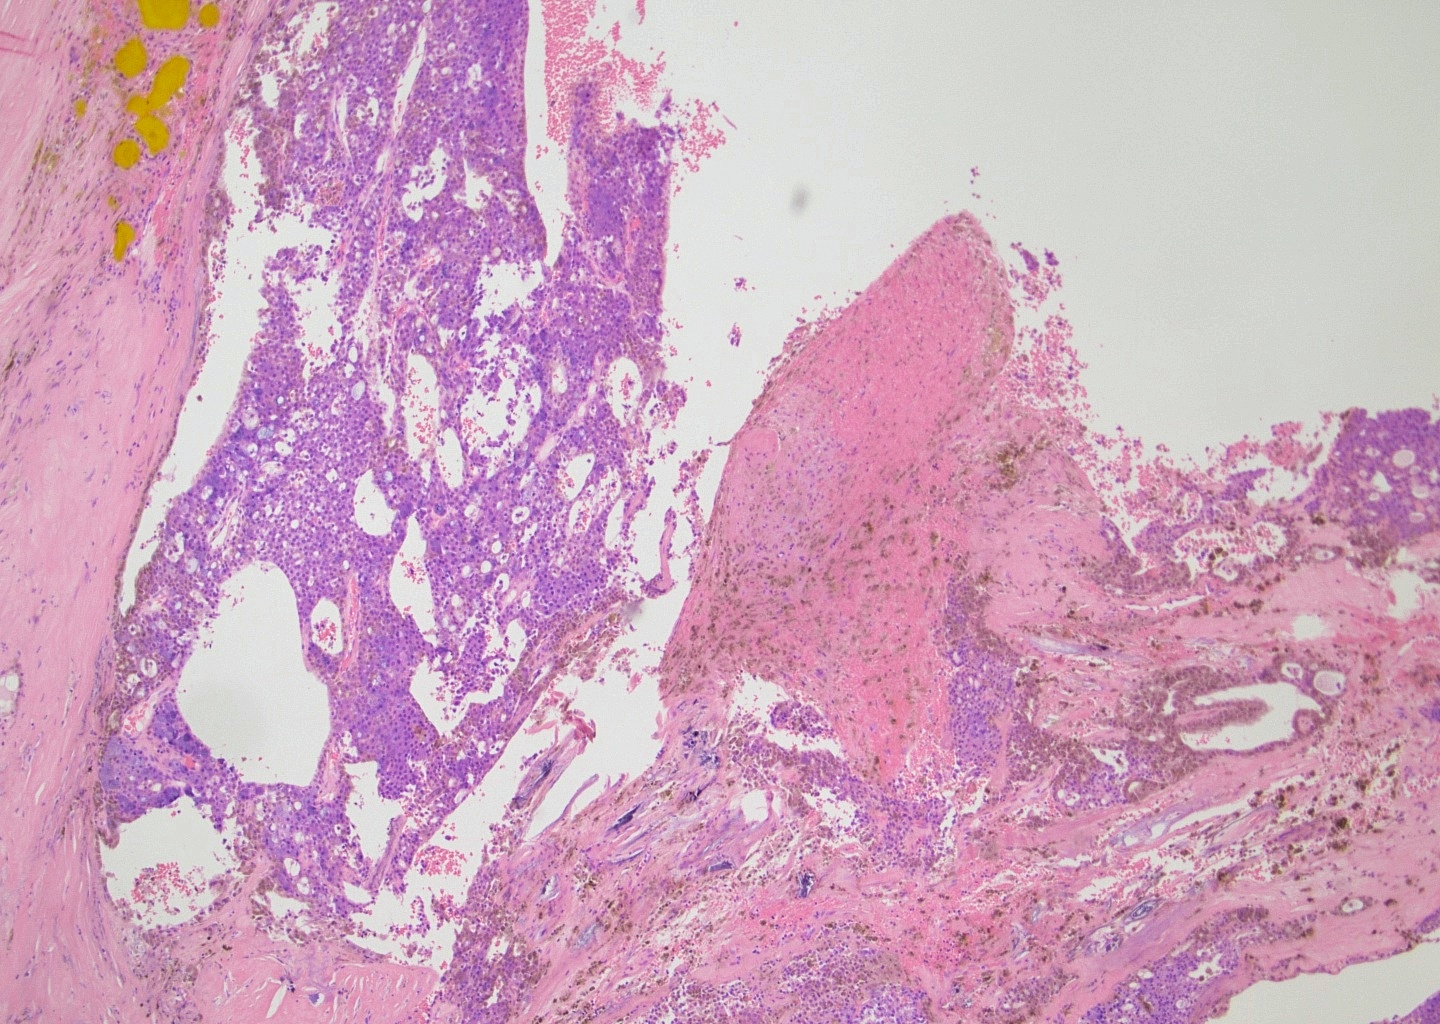 Cystic pattern and hemorrhage